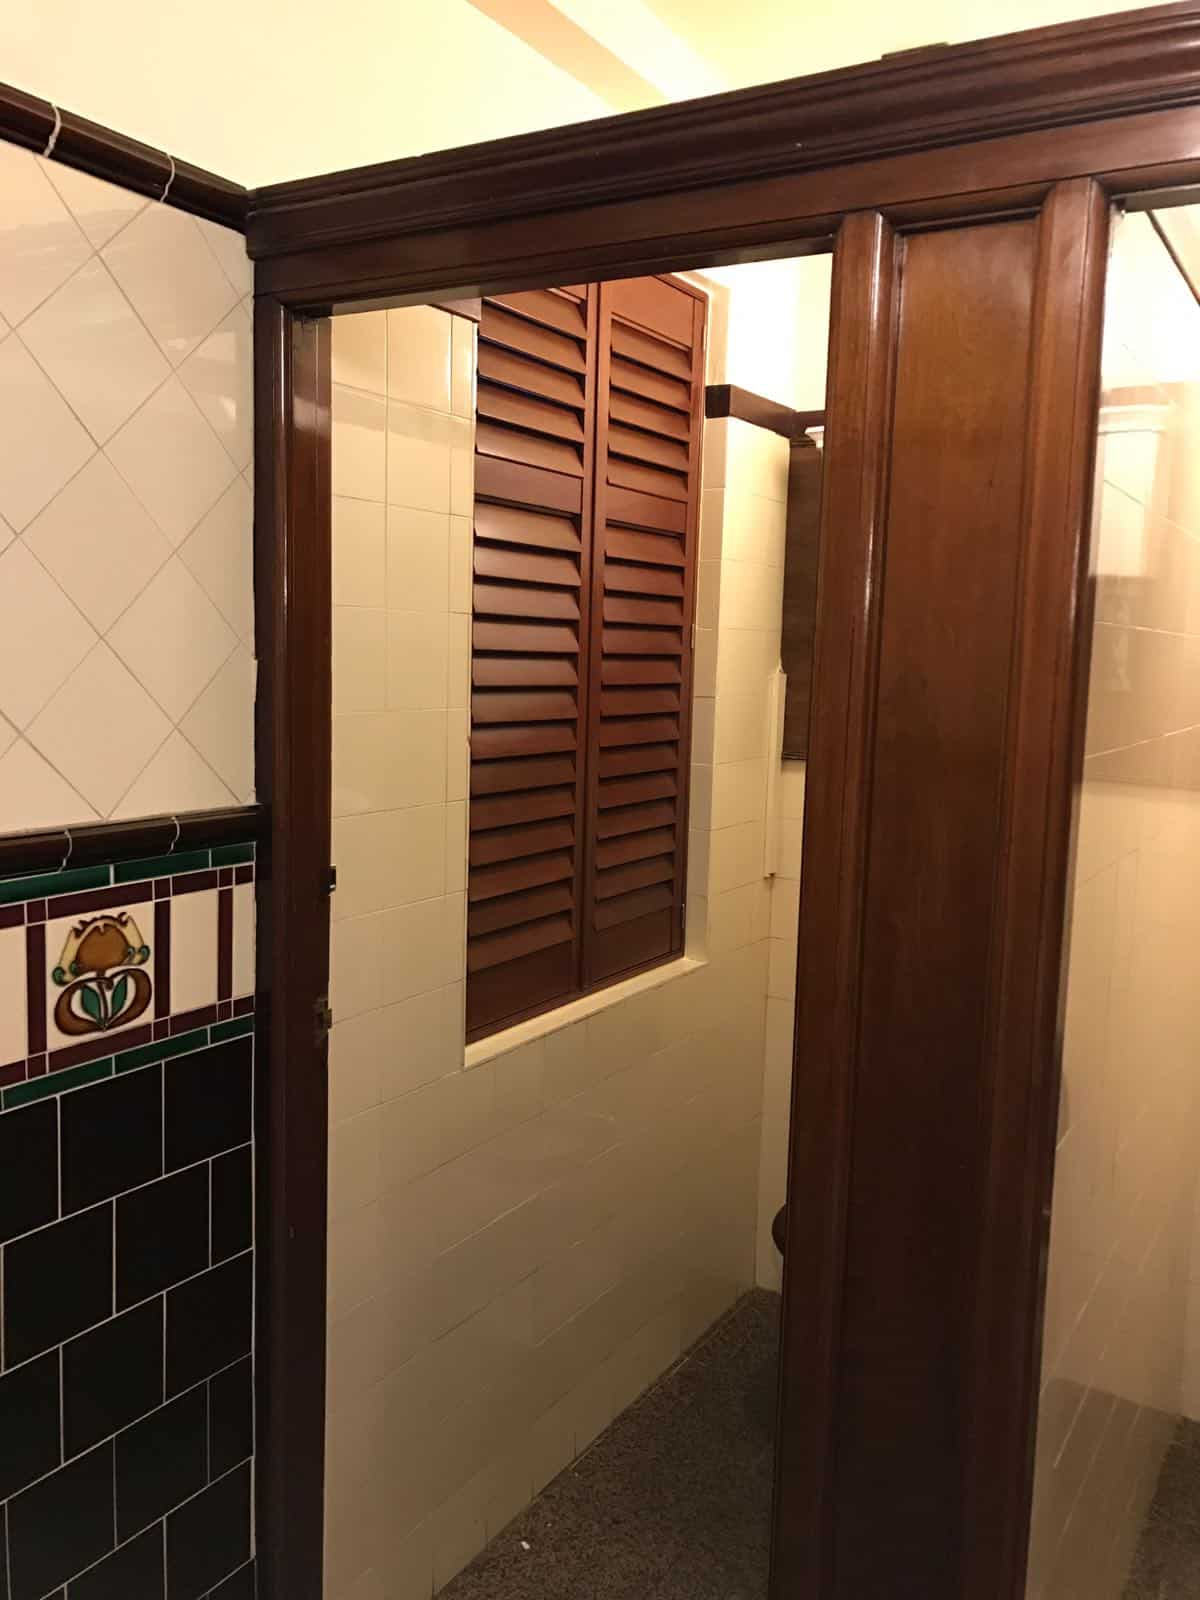 Wooden Window shutters at the Grand Hotel Brighton & Hove